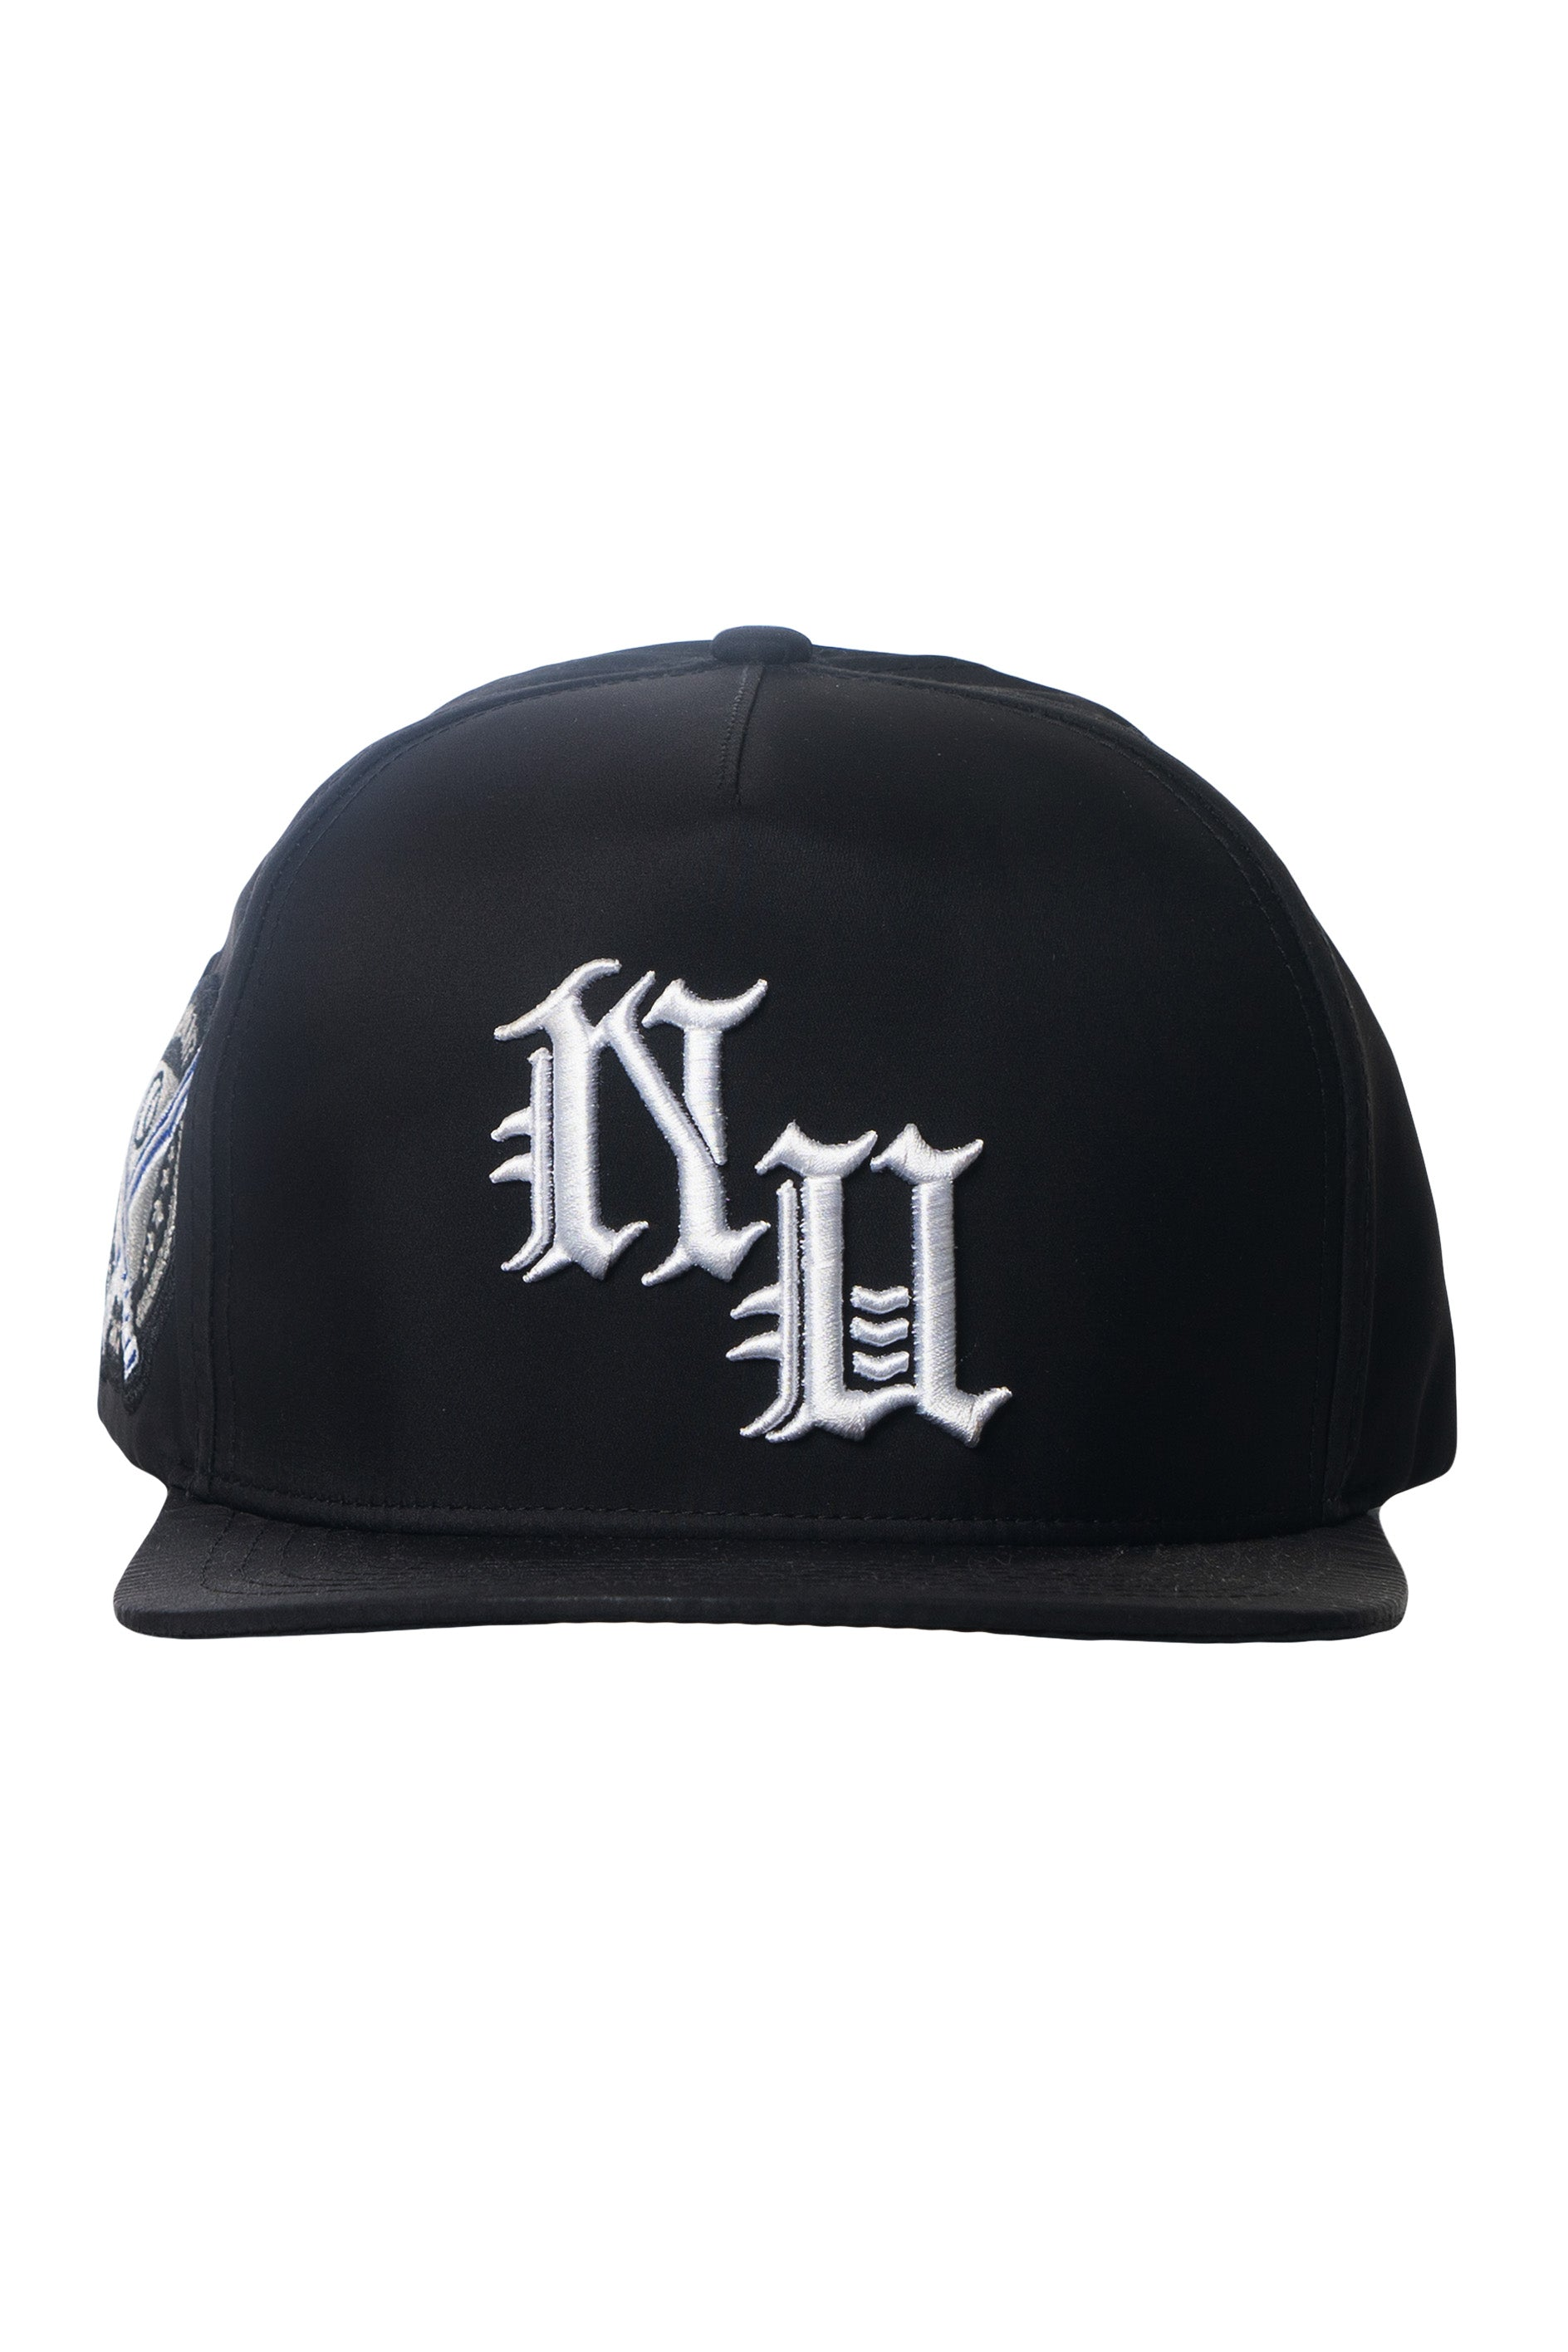 NERDUNIT BASEBALL LEAGUE DIAGONAL CAP